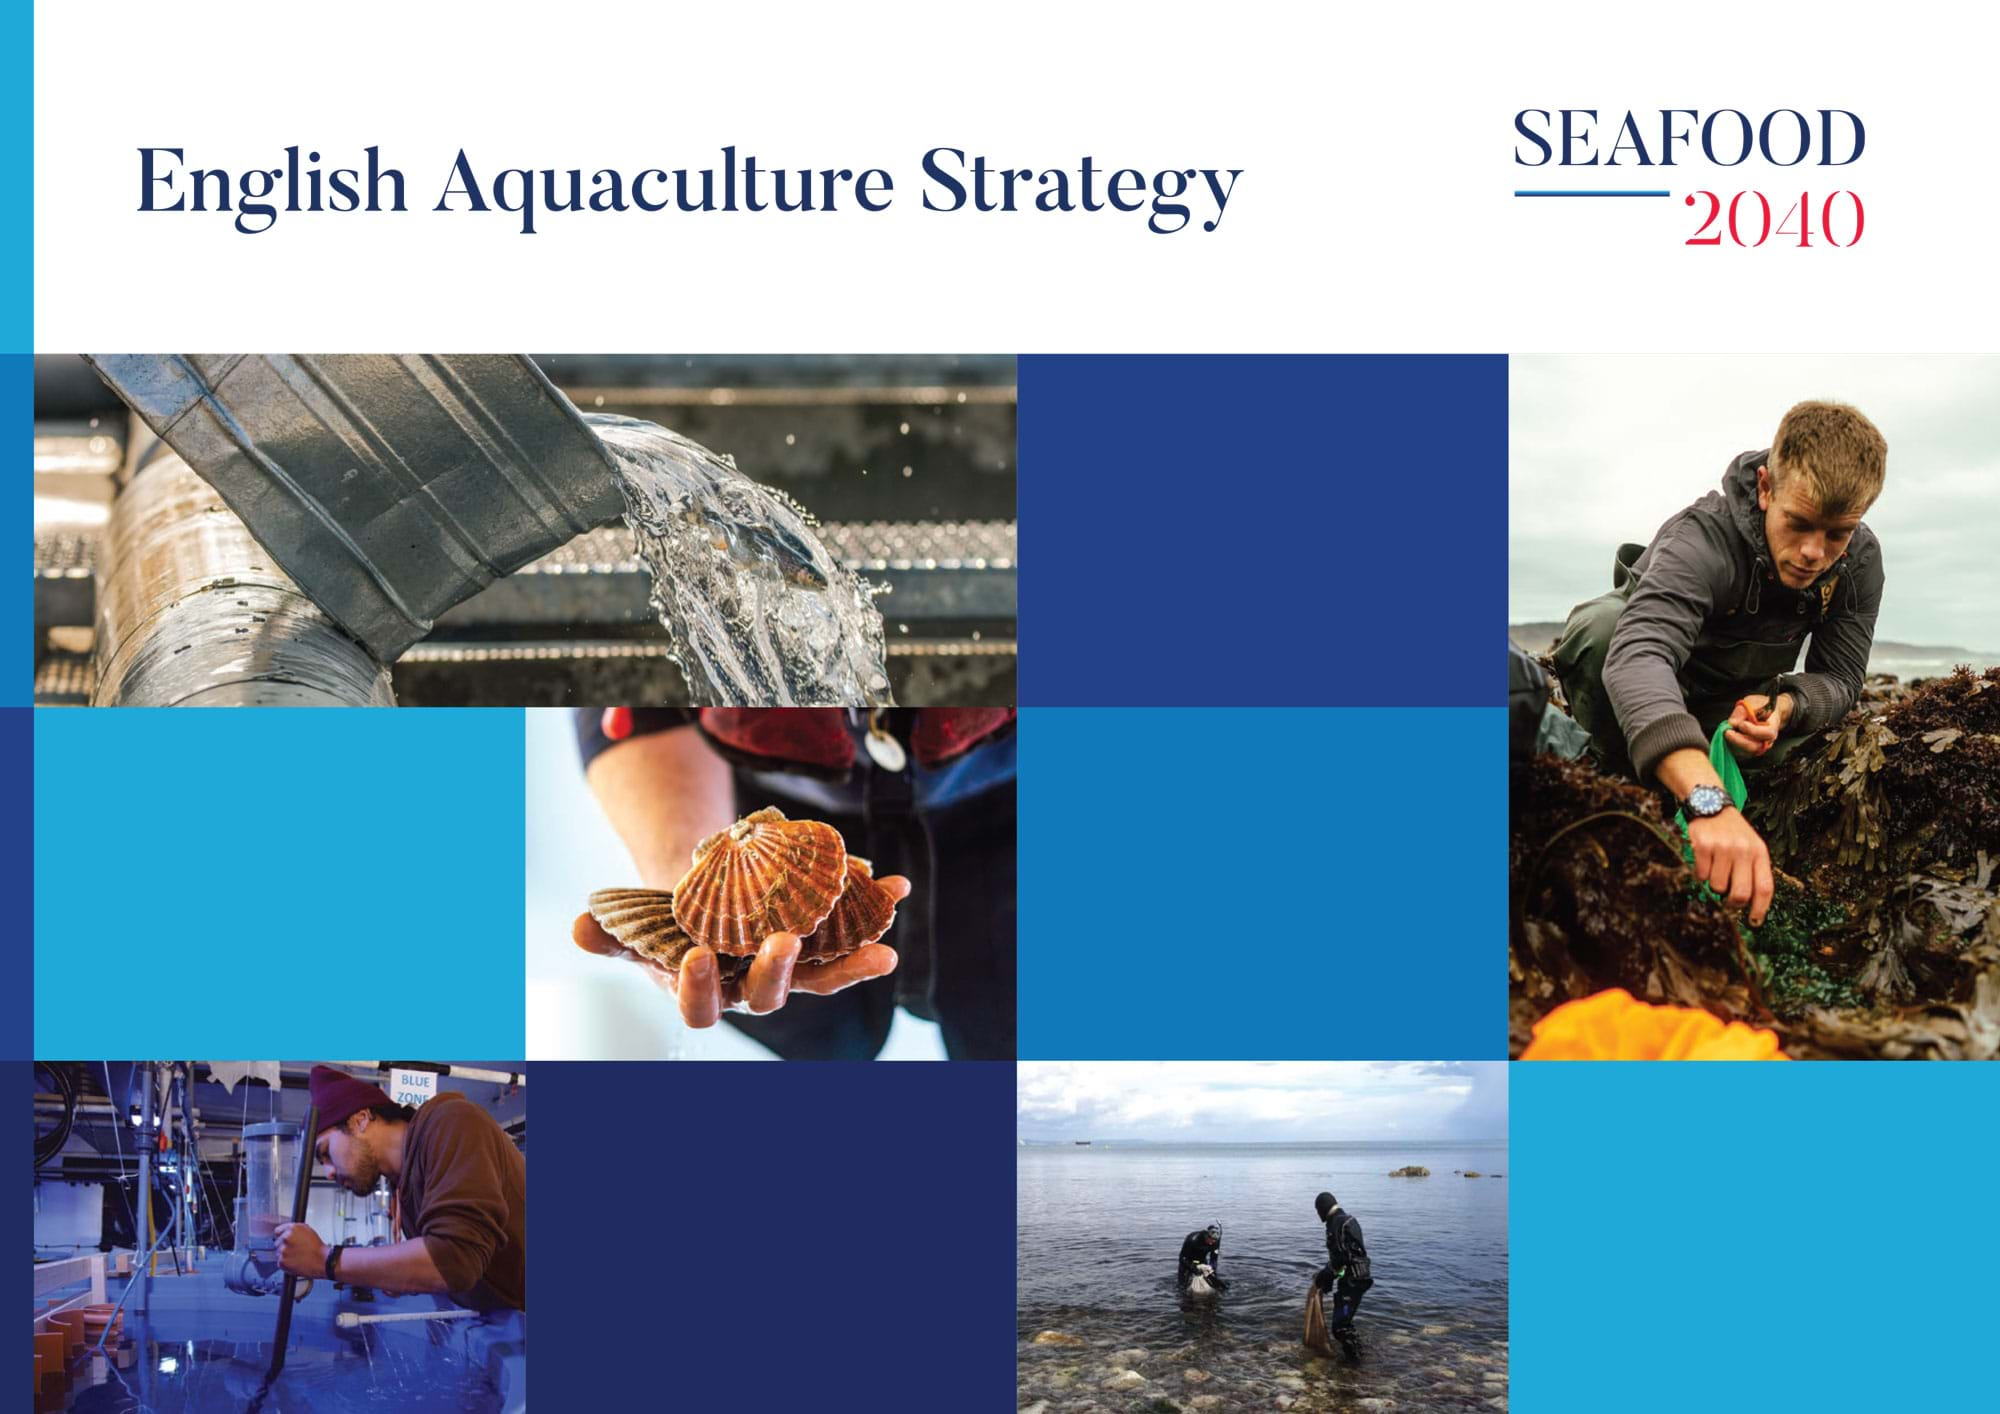 Cover of the English Aquaculture Strategy report by Seafood 2040